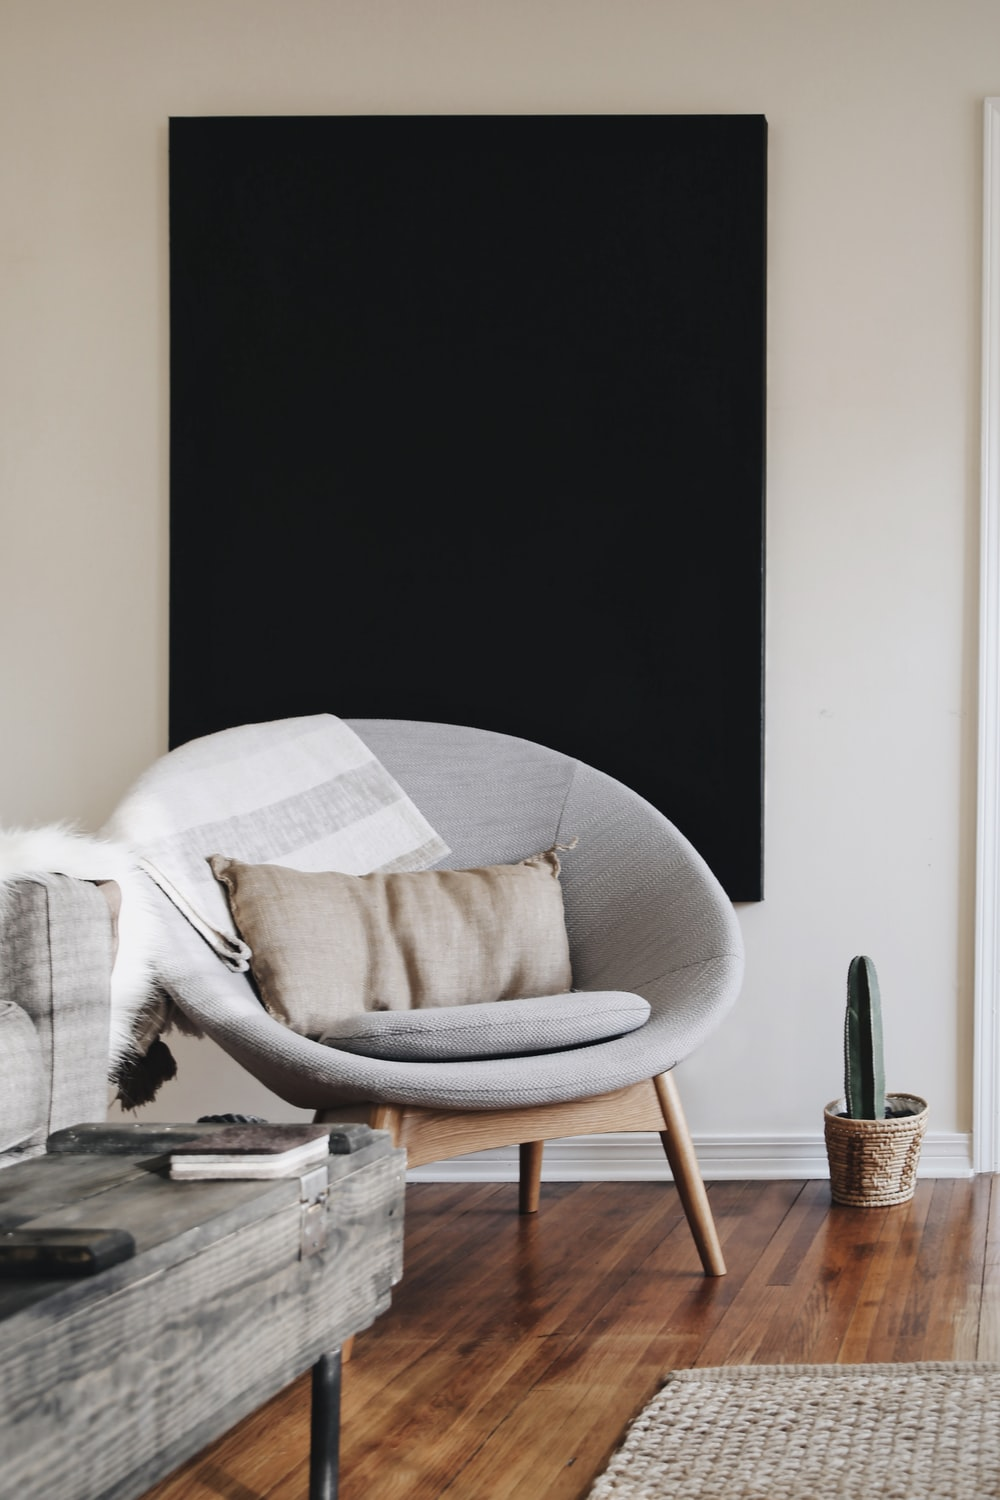 round grey moon chair with brown pillow on top